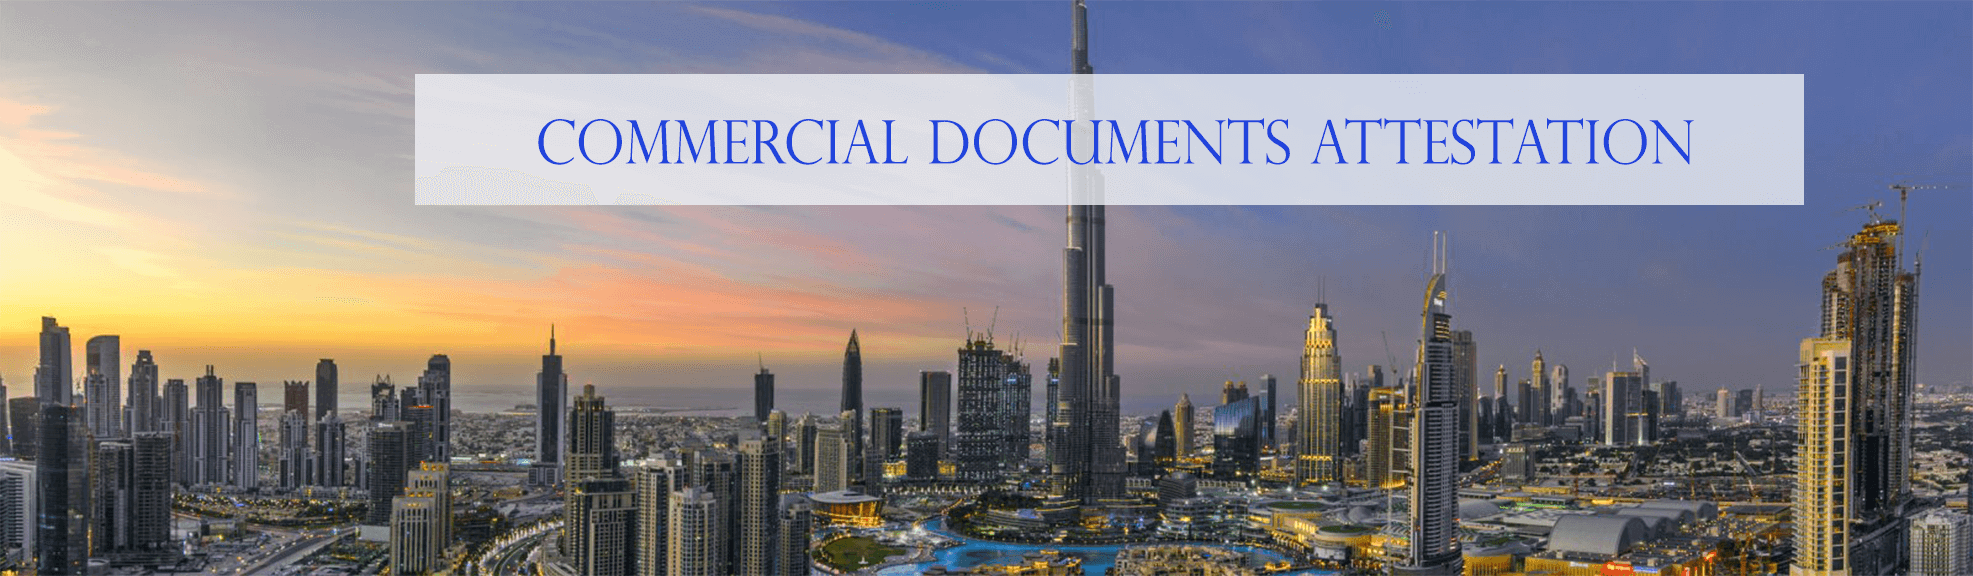 Commercial Document Attestation Services in UAE